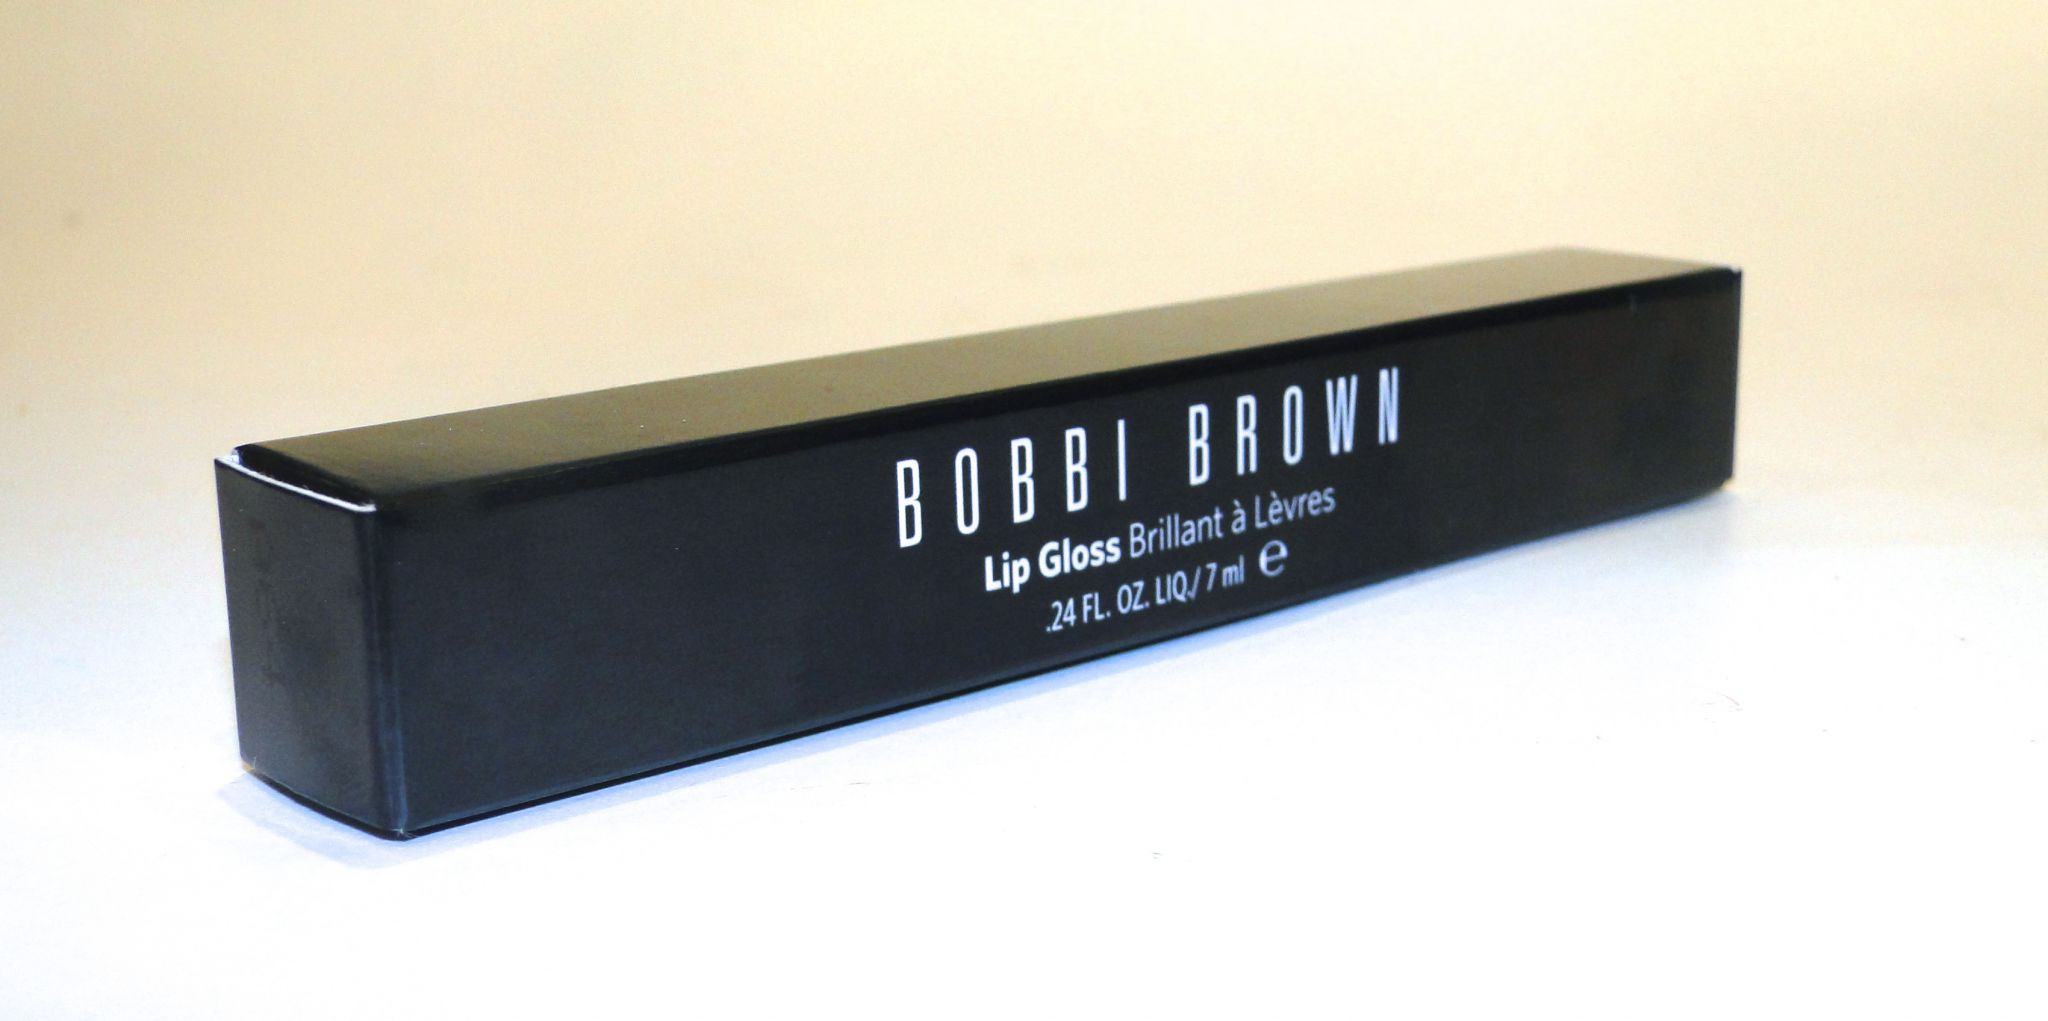 Bobbi Brown Almost Pink Lipgloss